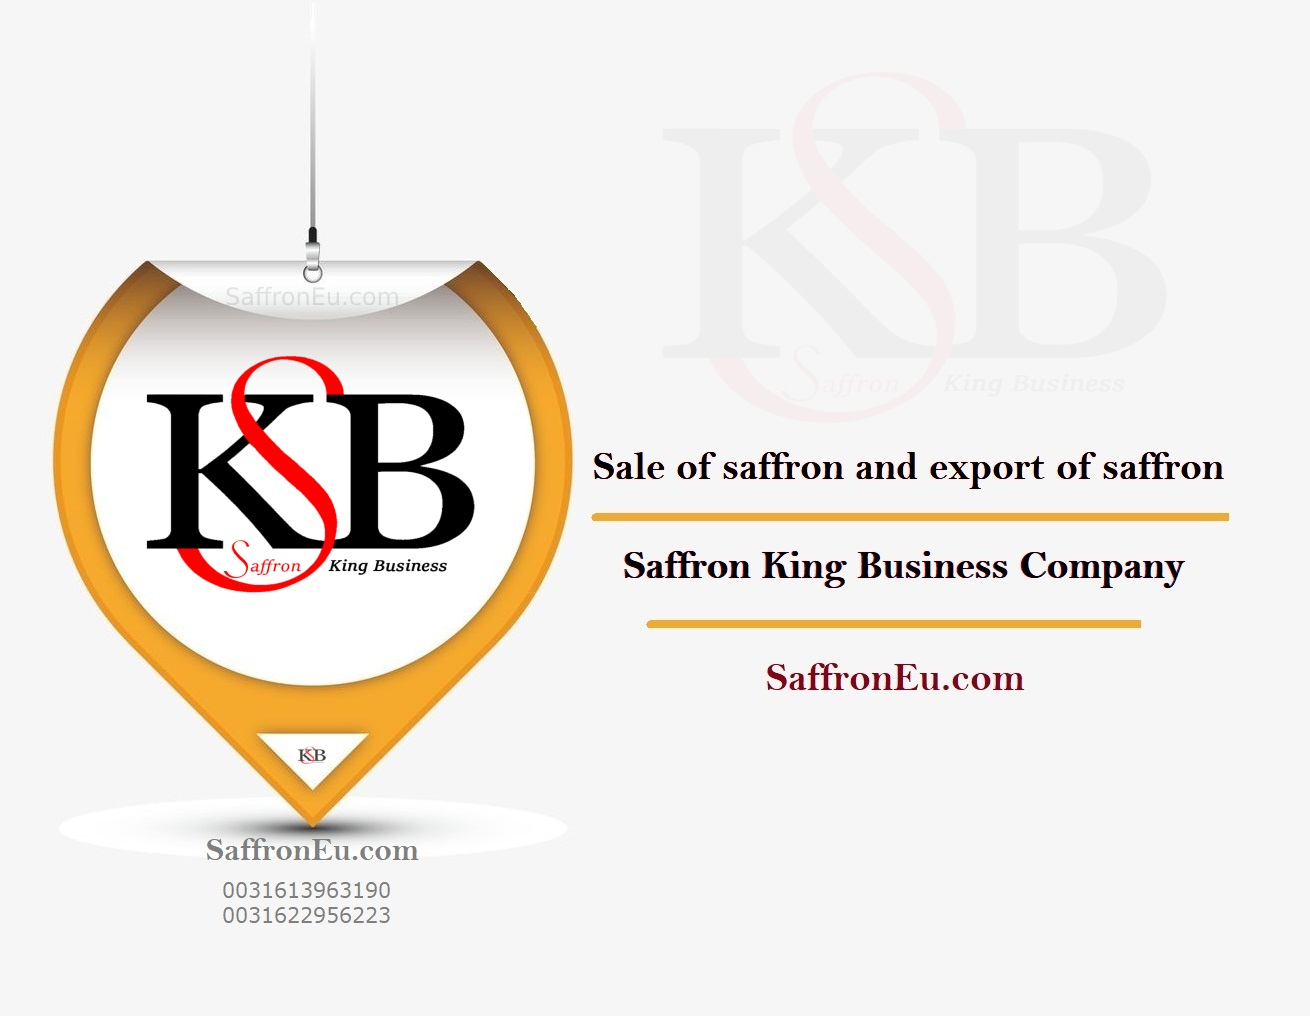 Buy saffron from the company